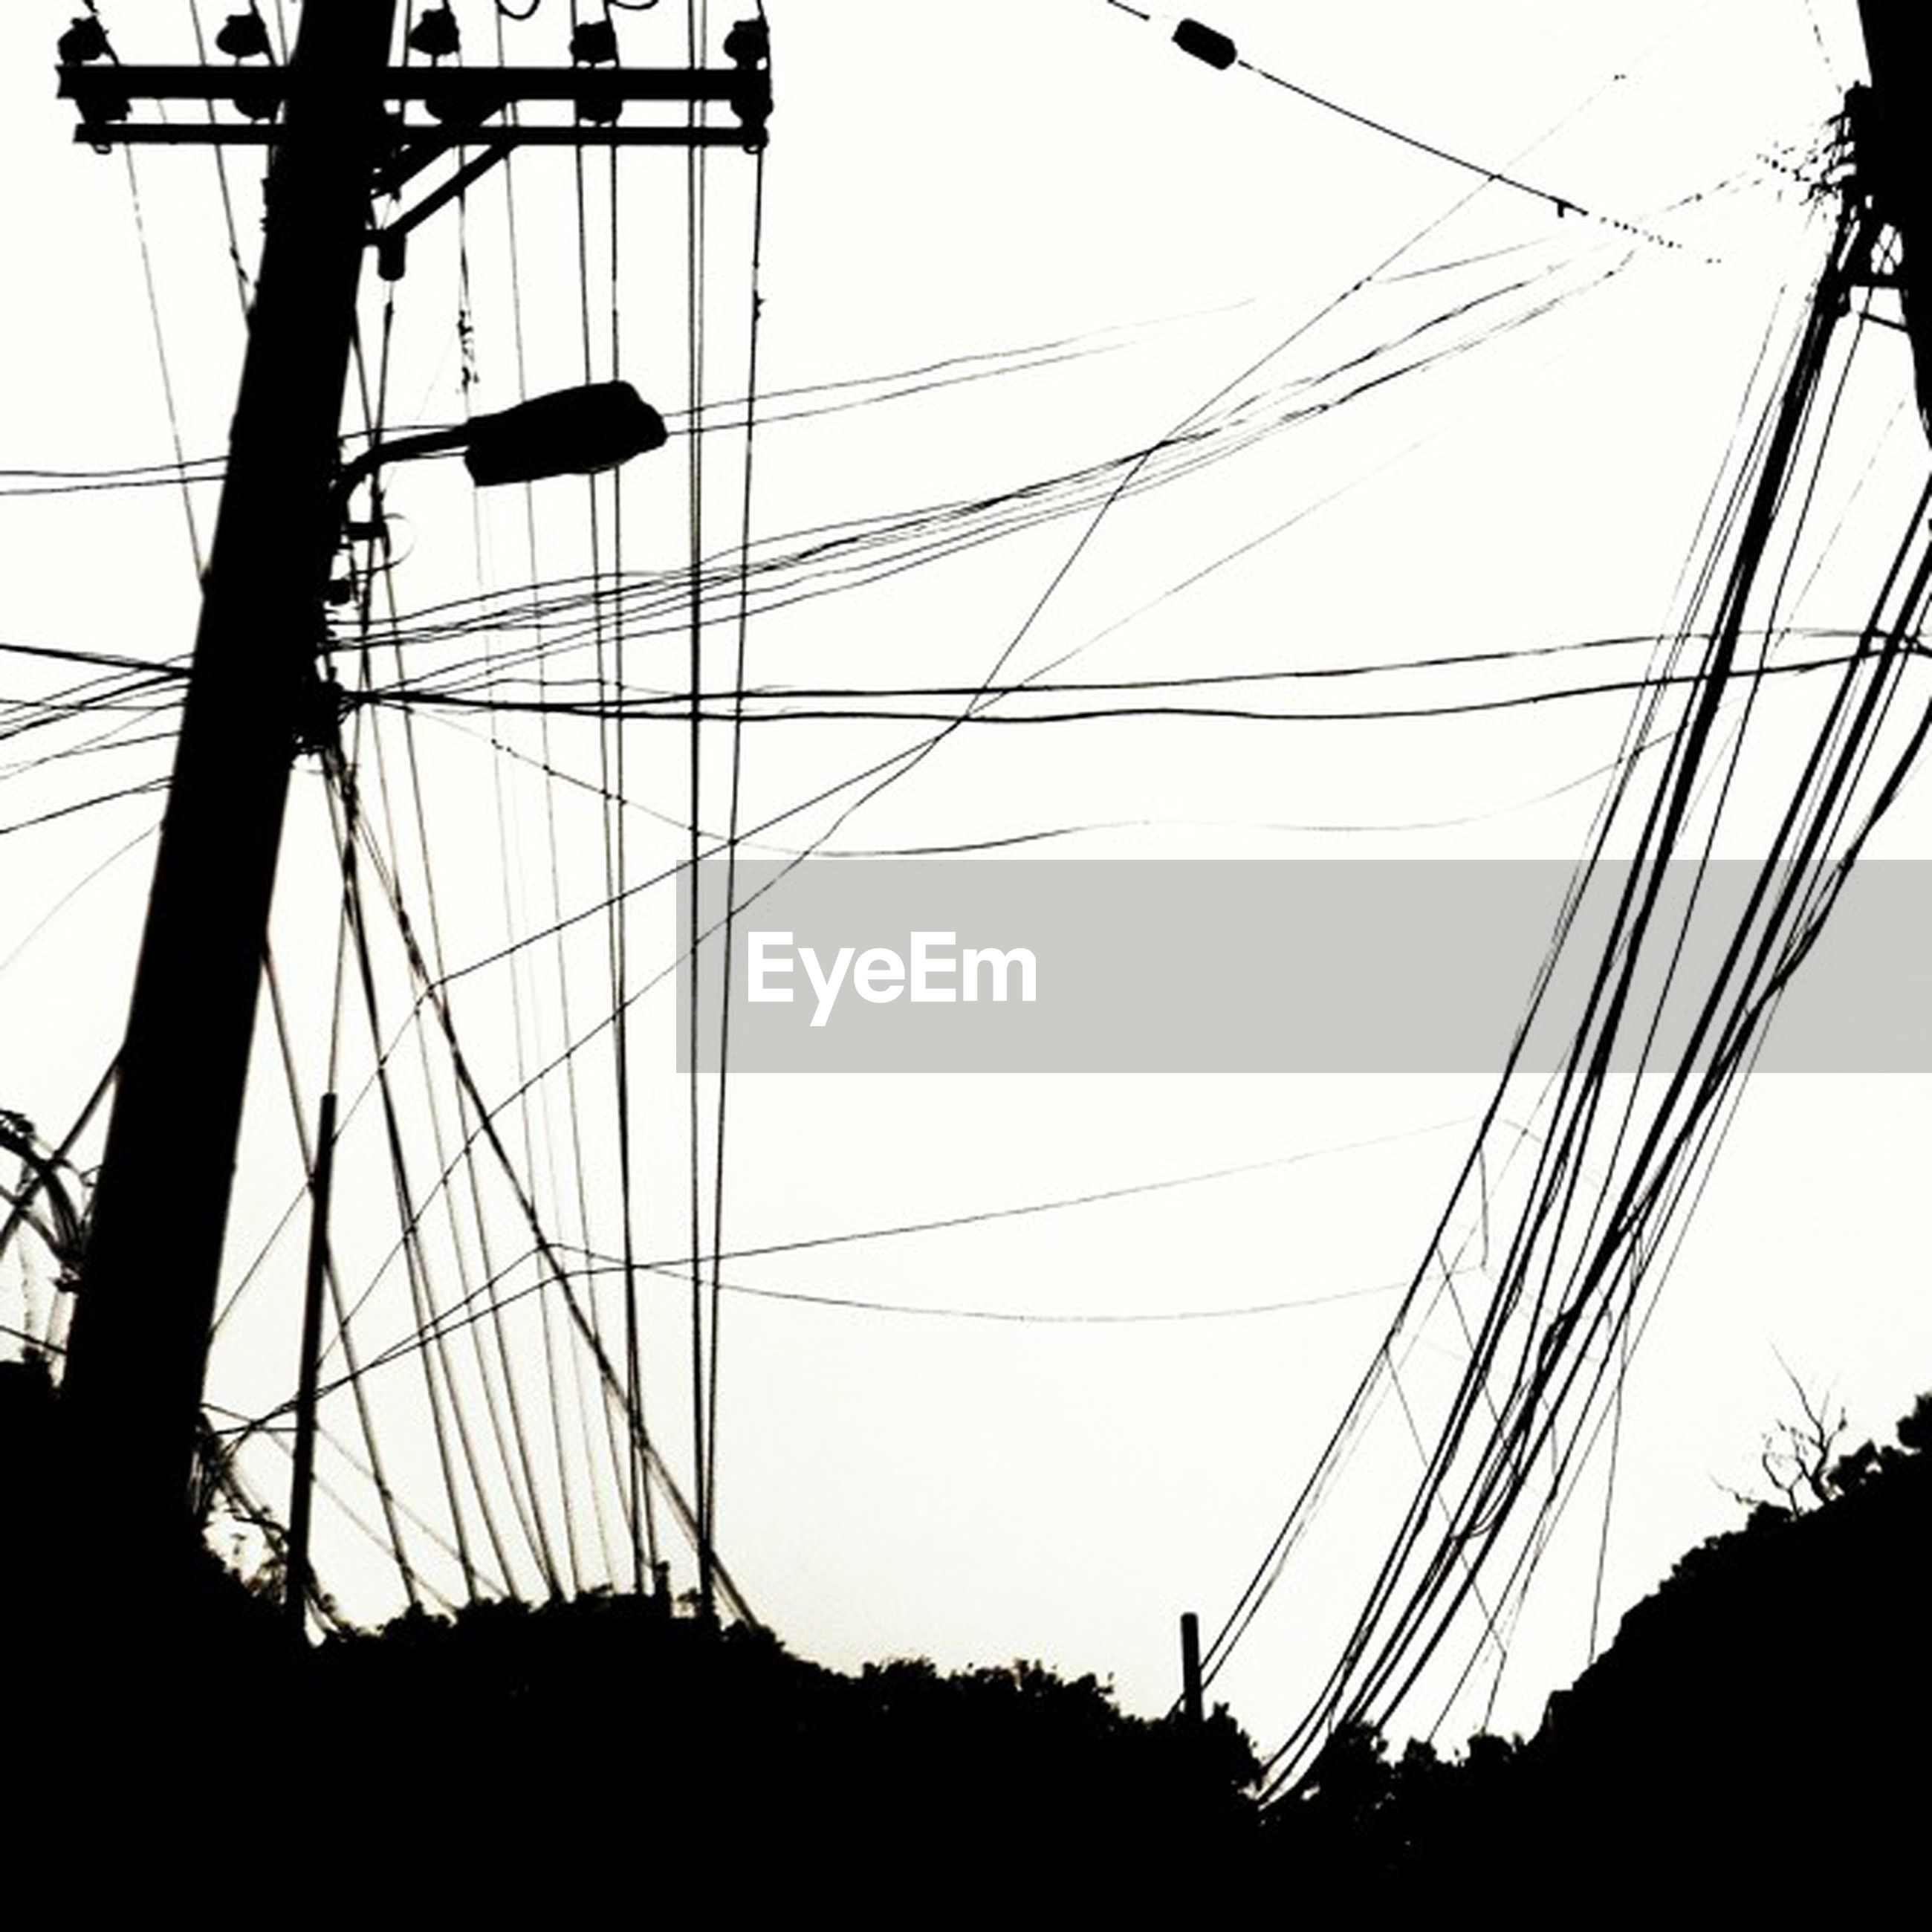 power line, electricity pylon, power supply, electricity, cable, connection, low angle view, technology, silhouette, fuel and power generation, sky, clear sky, power cable, transportation, telephone pole, outdoors, telephone line, dusk, electricity tower, complexity